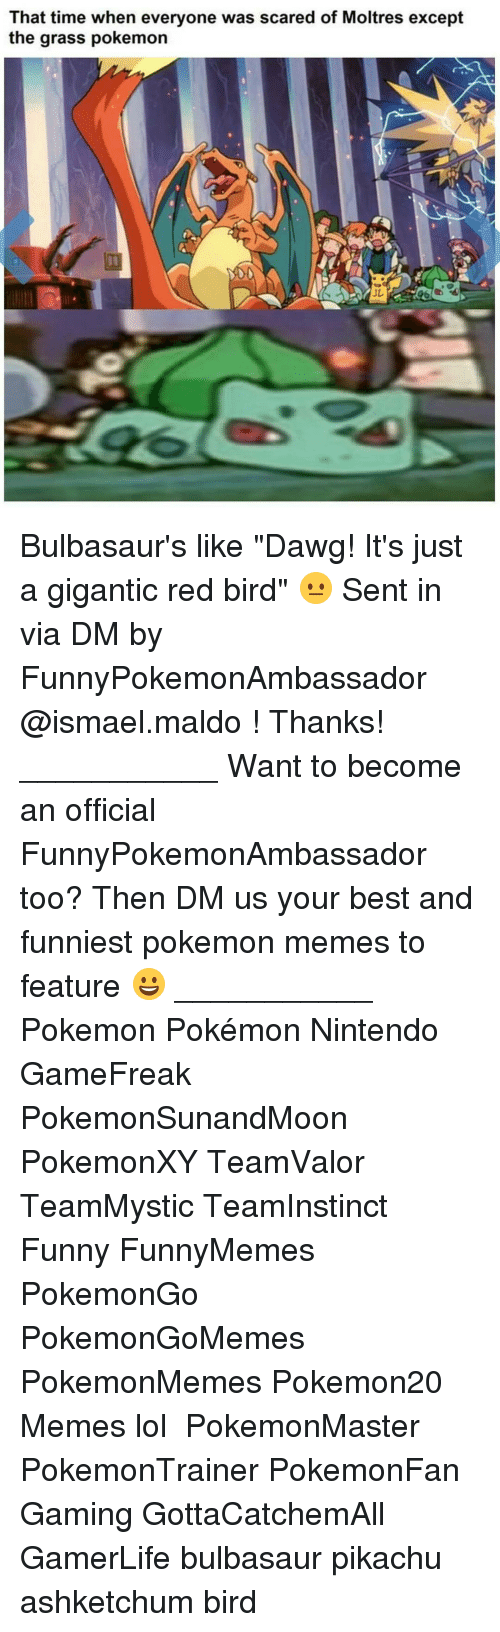 "Bulbasaur, Memes, and 🤖: That time when everyone was scared of Moltres except  the grass pokemon Bulbasaur's like ""Dawg! It's just a gigantic red bird"" 😐 Sent in via DM by FunnyPokemonAmbassador @ismael.maldo ! Thanks! ___________ Want to become an official FunnyPokemonAmbassador too? Then DM us your best and funniest pokemon memes to feature 😀 ___________ Pokemon Pokémon Nintendo GameFreak PokemonSunandMoon PokemonXY TeamValor TeamMystic TeamInstinct Funny FunnyMemes PokemonGo PokemonGoMemes PokemonMemes Pokemon20 Memes lol ポケットモンスター PokemonMaster PokemonTrainer PokemonFan Gaming GottaCatchemAll GamerLife bulbasaur pikachu ashketchum bird"